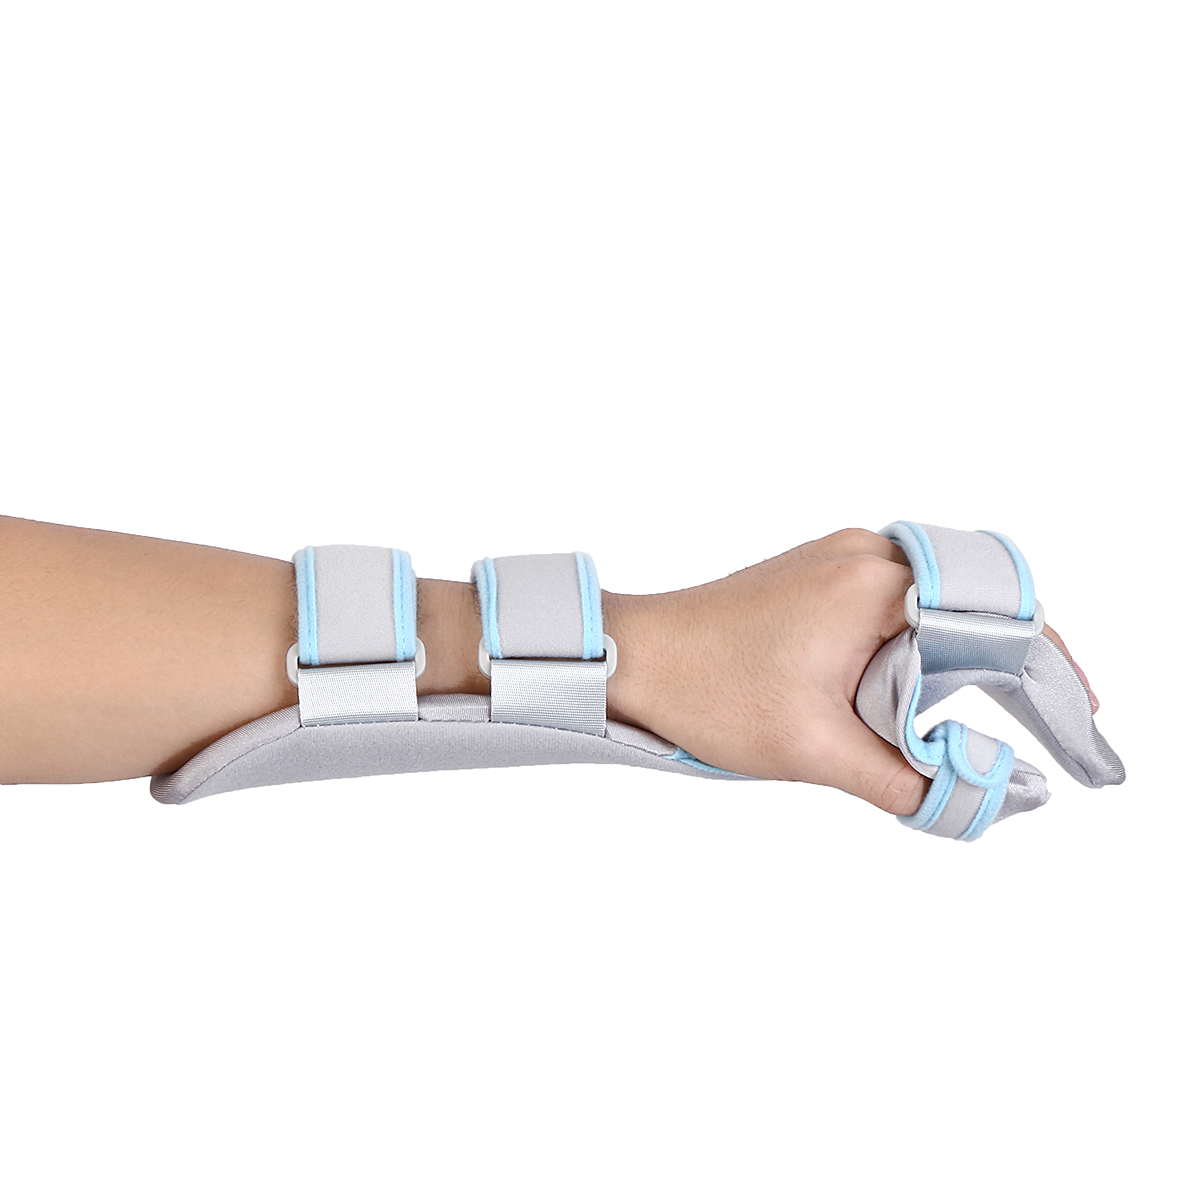 Carpal Tunnel Wrist Brace Support Sprain Forearm Splint Band